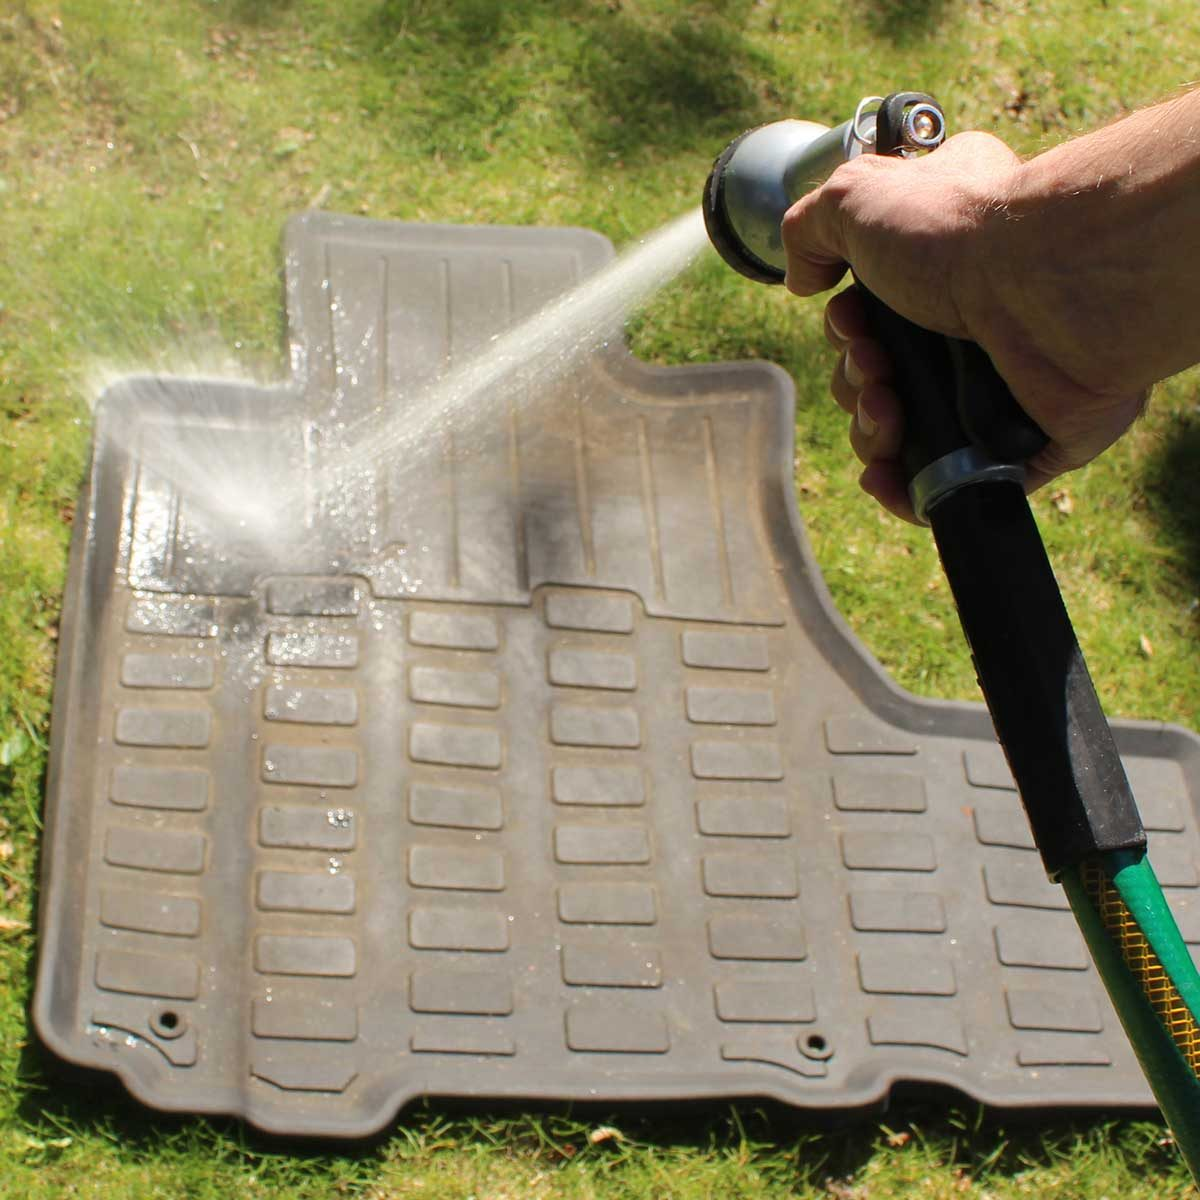 Spraying floor mats